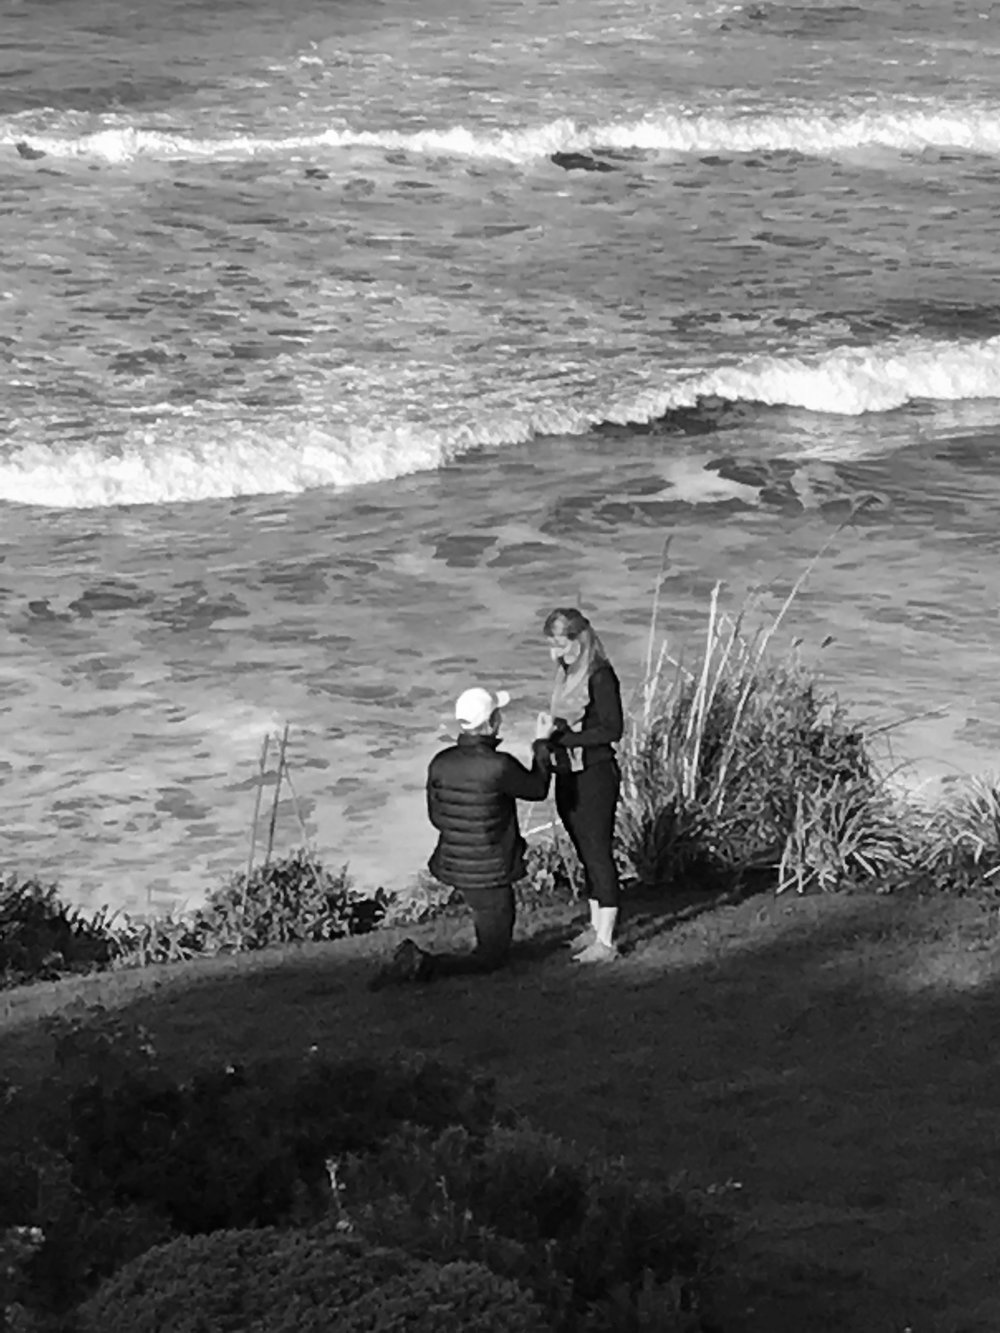 THE PROPOSAL - We were visiting family and friends in Arche Cape, Oregon for Thanksgiving, staying at a beautiful house on the ocean. He wanted to create that perfect moment on the beach. Unfortunately, the weather had other plans. One of the last mornings the skies finally cleared and he insisted we take our coffee outside. Standing on the edge of the bluff, in the first bit of sunshine we had seen for days, he popped the question. Naturally, I said yes.Champagne and a hike up Neahkahnie Mountain followed.